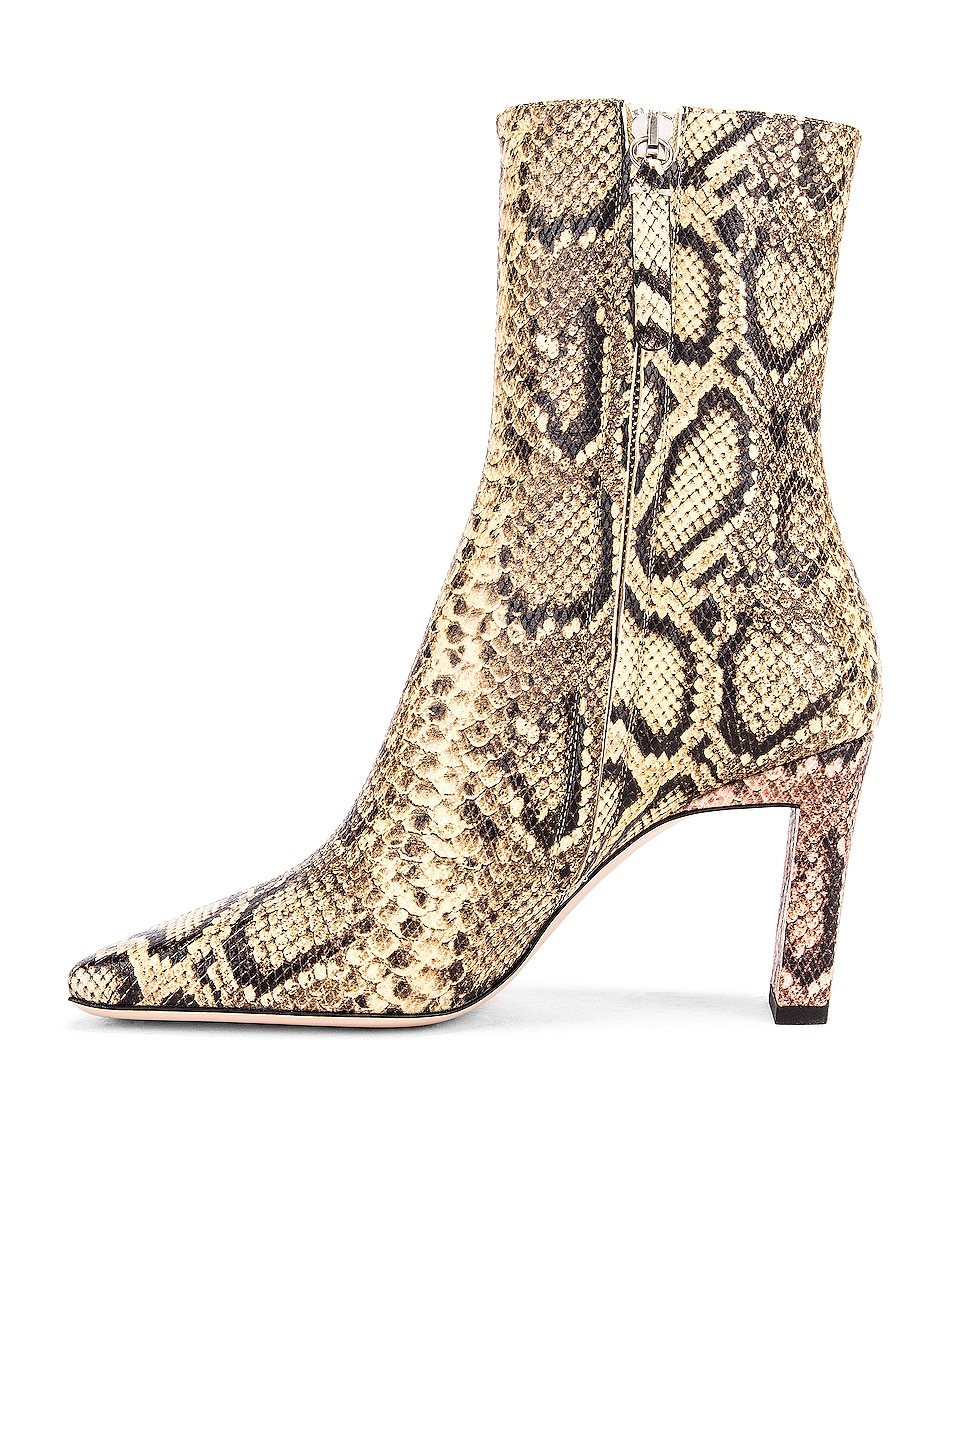 Image 5 of Wandler Isa Boots in Mustard & Python